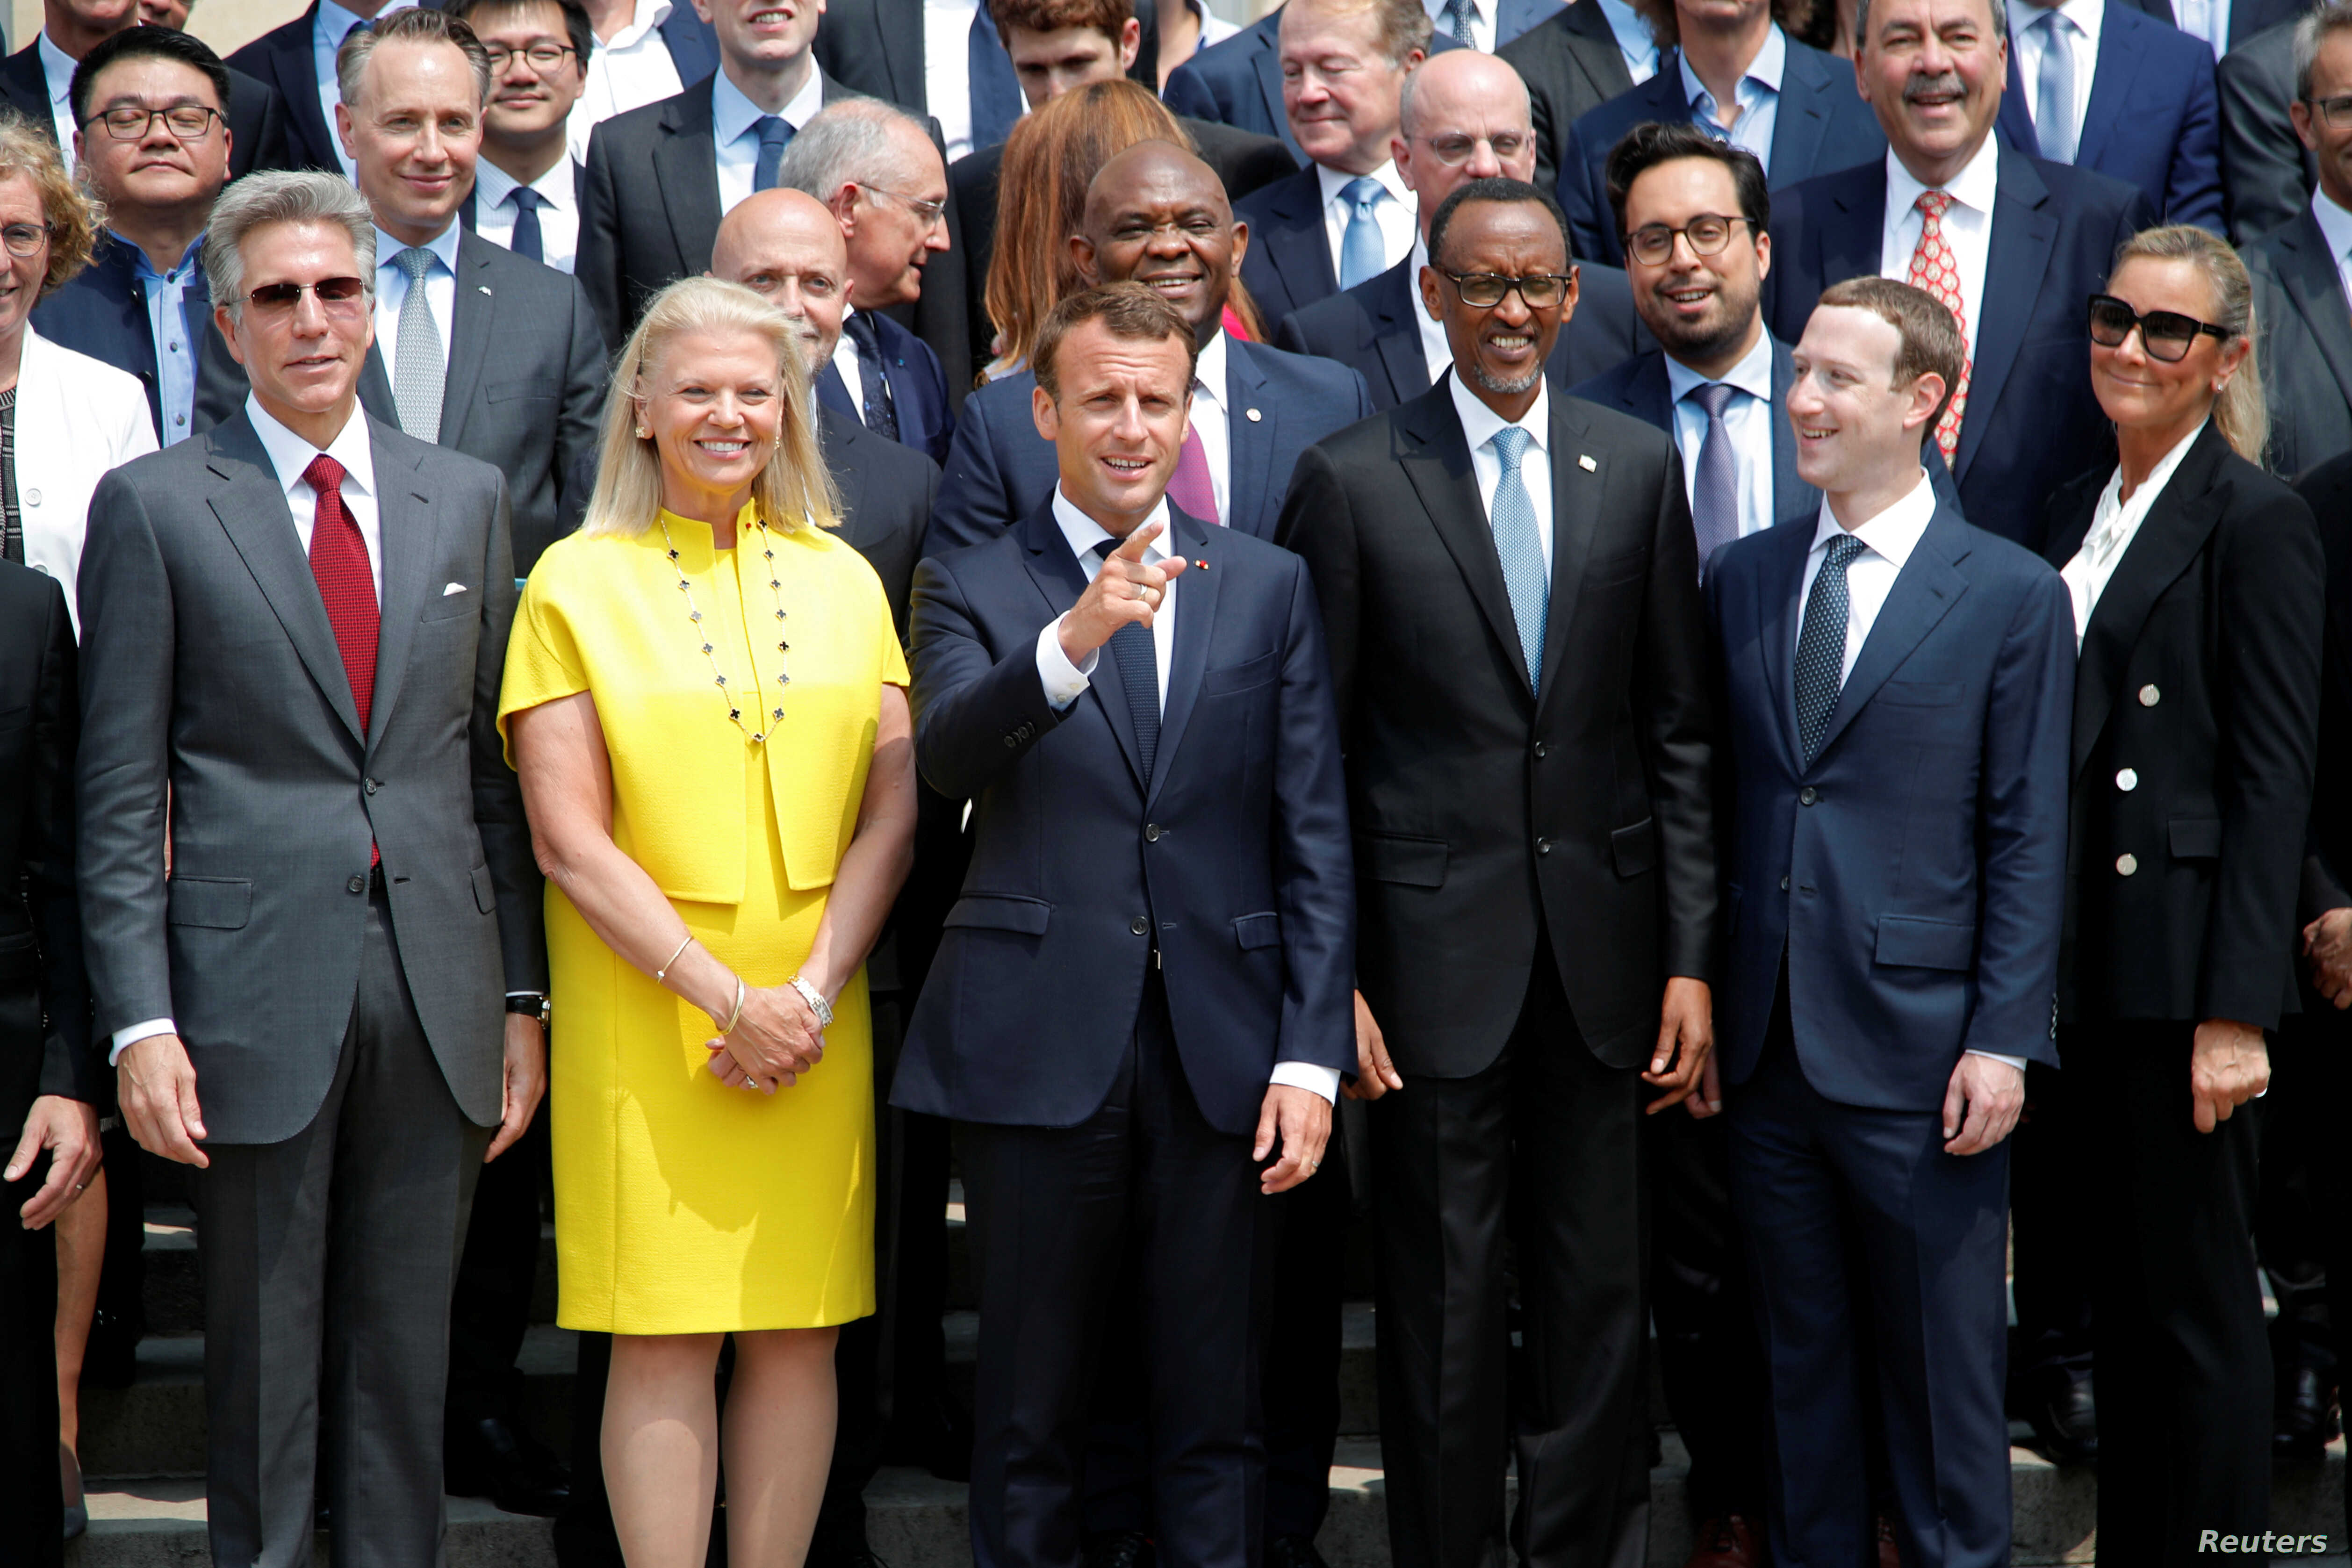 French President Macron poses for a family picture with Rwanda's President Kagame, Facebook's CEO Mark Zuckerberg and IMB's CEO Virginia Rometty at the Elysee Palace in Paris, May 23, 2018.